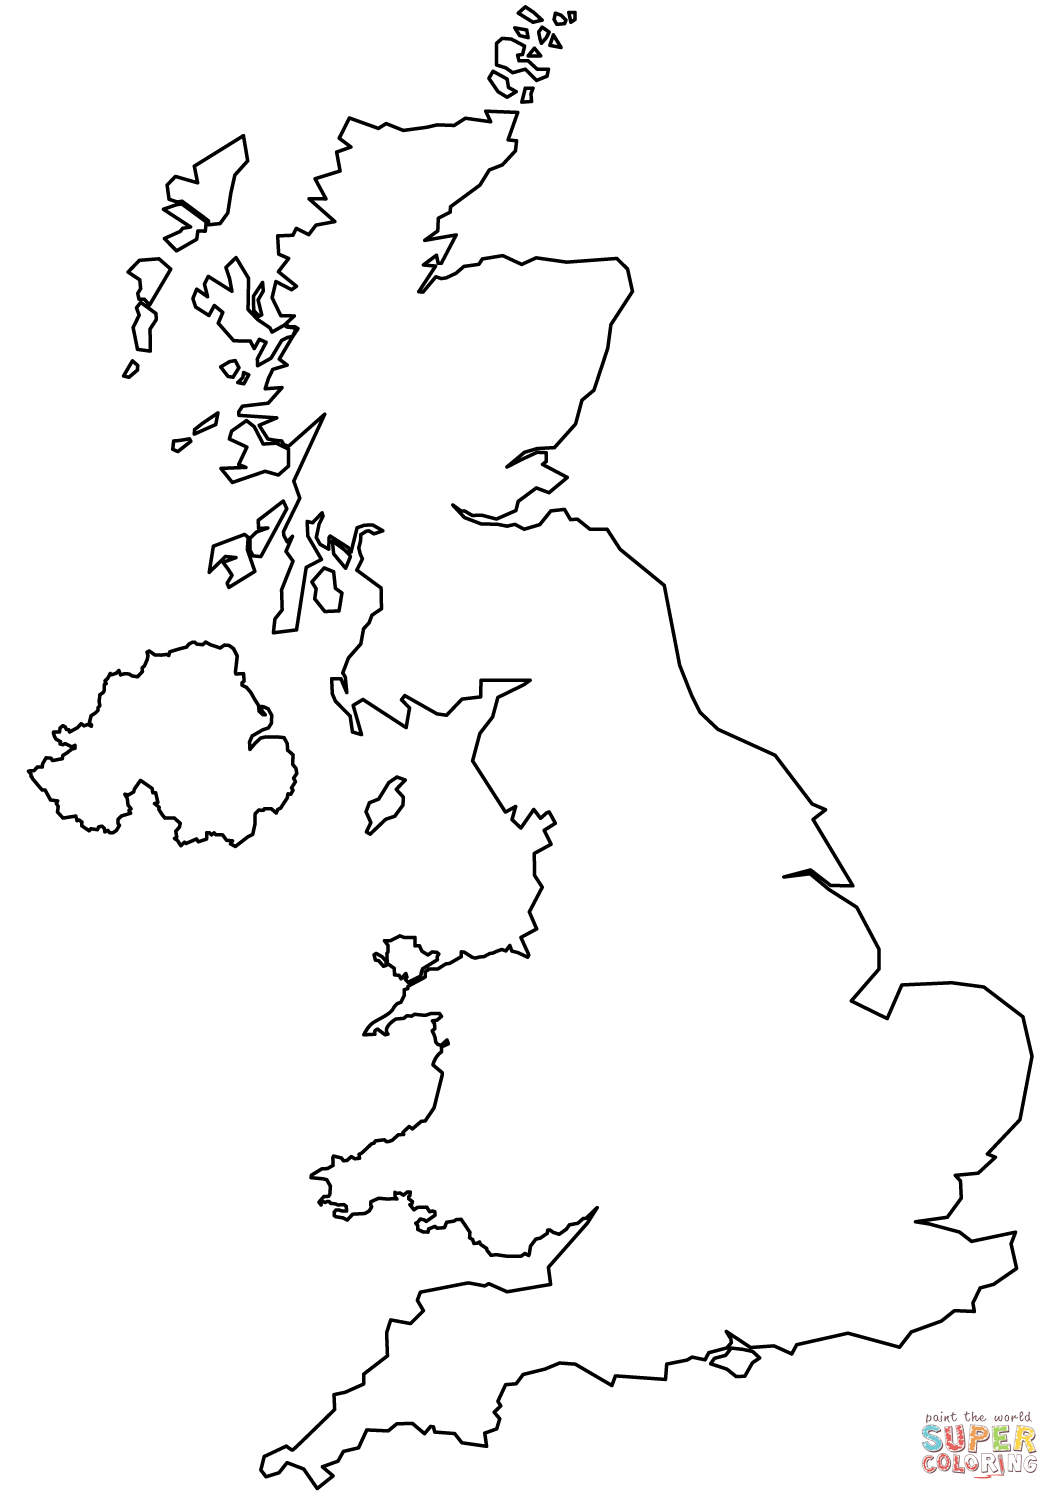 United Kingdom Blank Outline Map Coloring Page